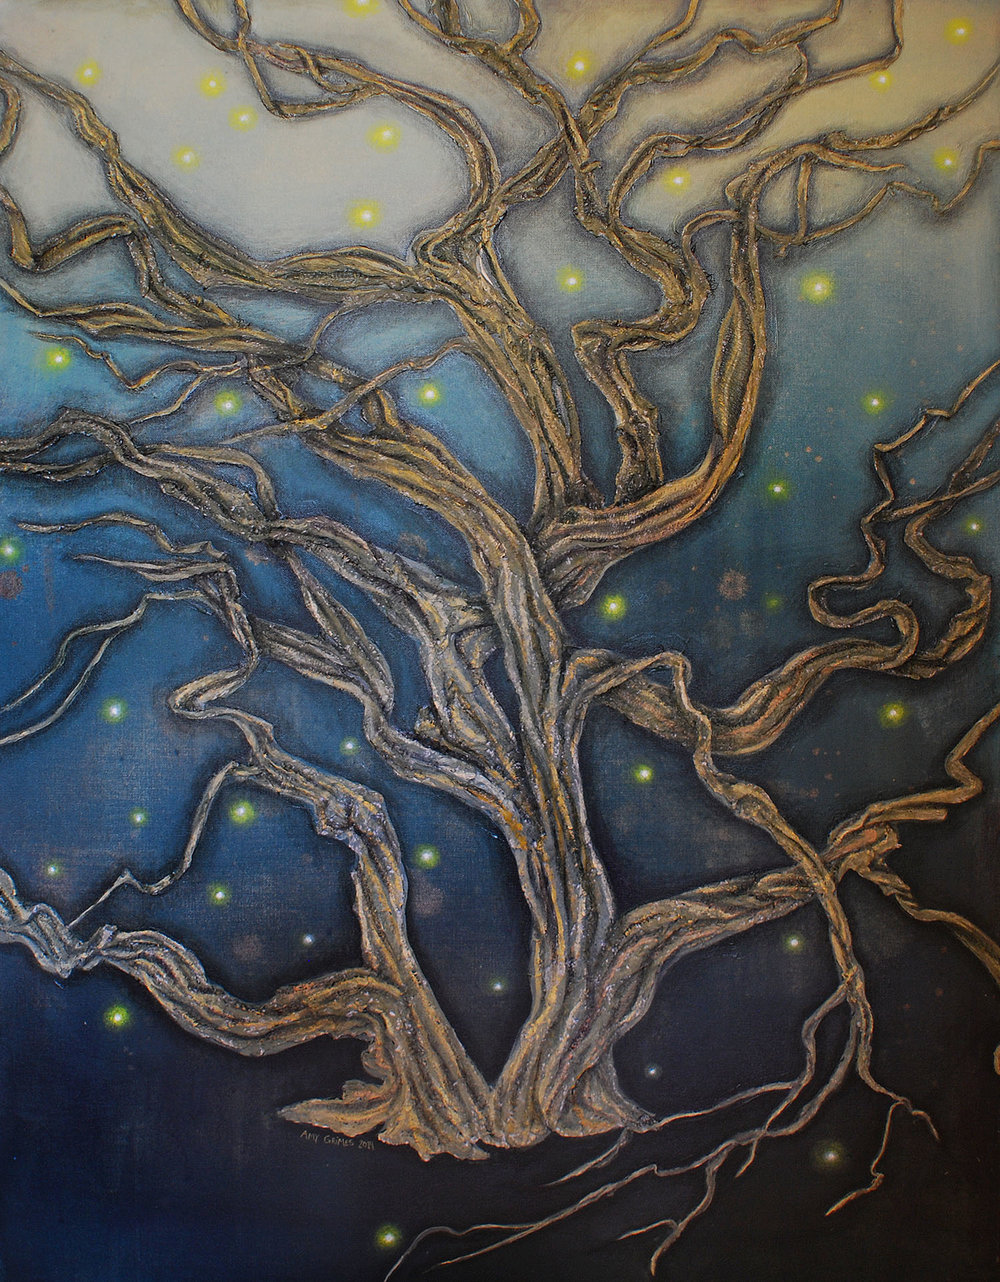 GLOW 30X40 Mixed-Media Acrylic on Gallery Canvas Contact For Pricing The lights in this tree are stubborn. They insist on burning their low, steady light in celebration of life. Life—with its green, growing hope. The lights won't wait for blades of grass to reach up from the ground. They won't wait for leaves to dot the branches of the twisty tree or for the sun to break through the gloom. They celebrate now—in the hazy darkness—because they know that dawn is coming.